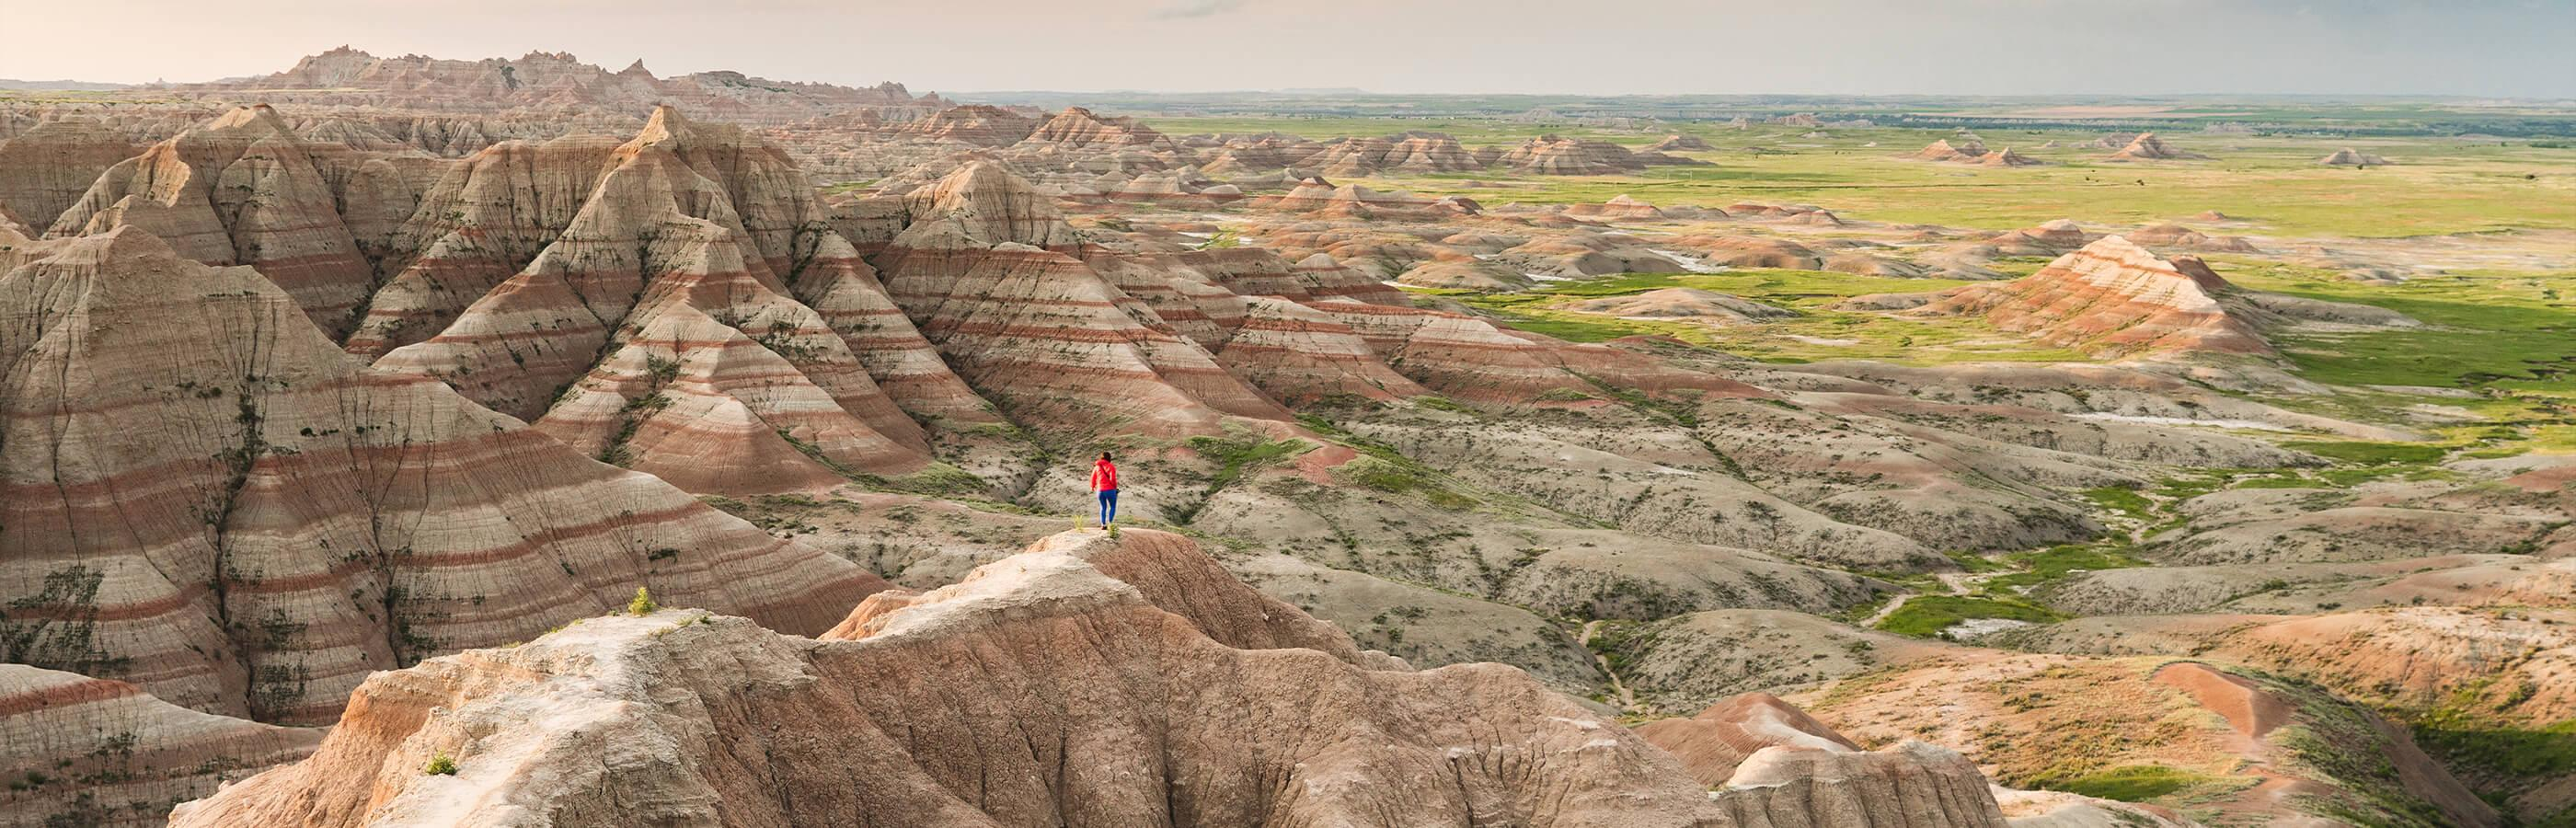 Woman hiking in the Badlands National Park